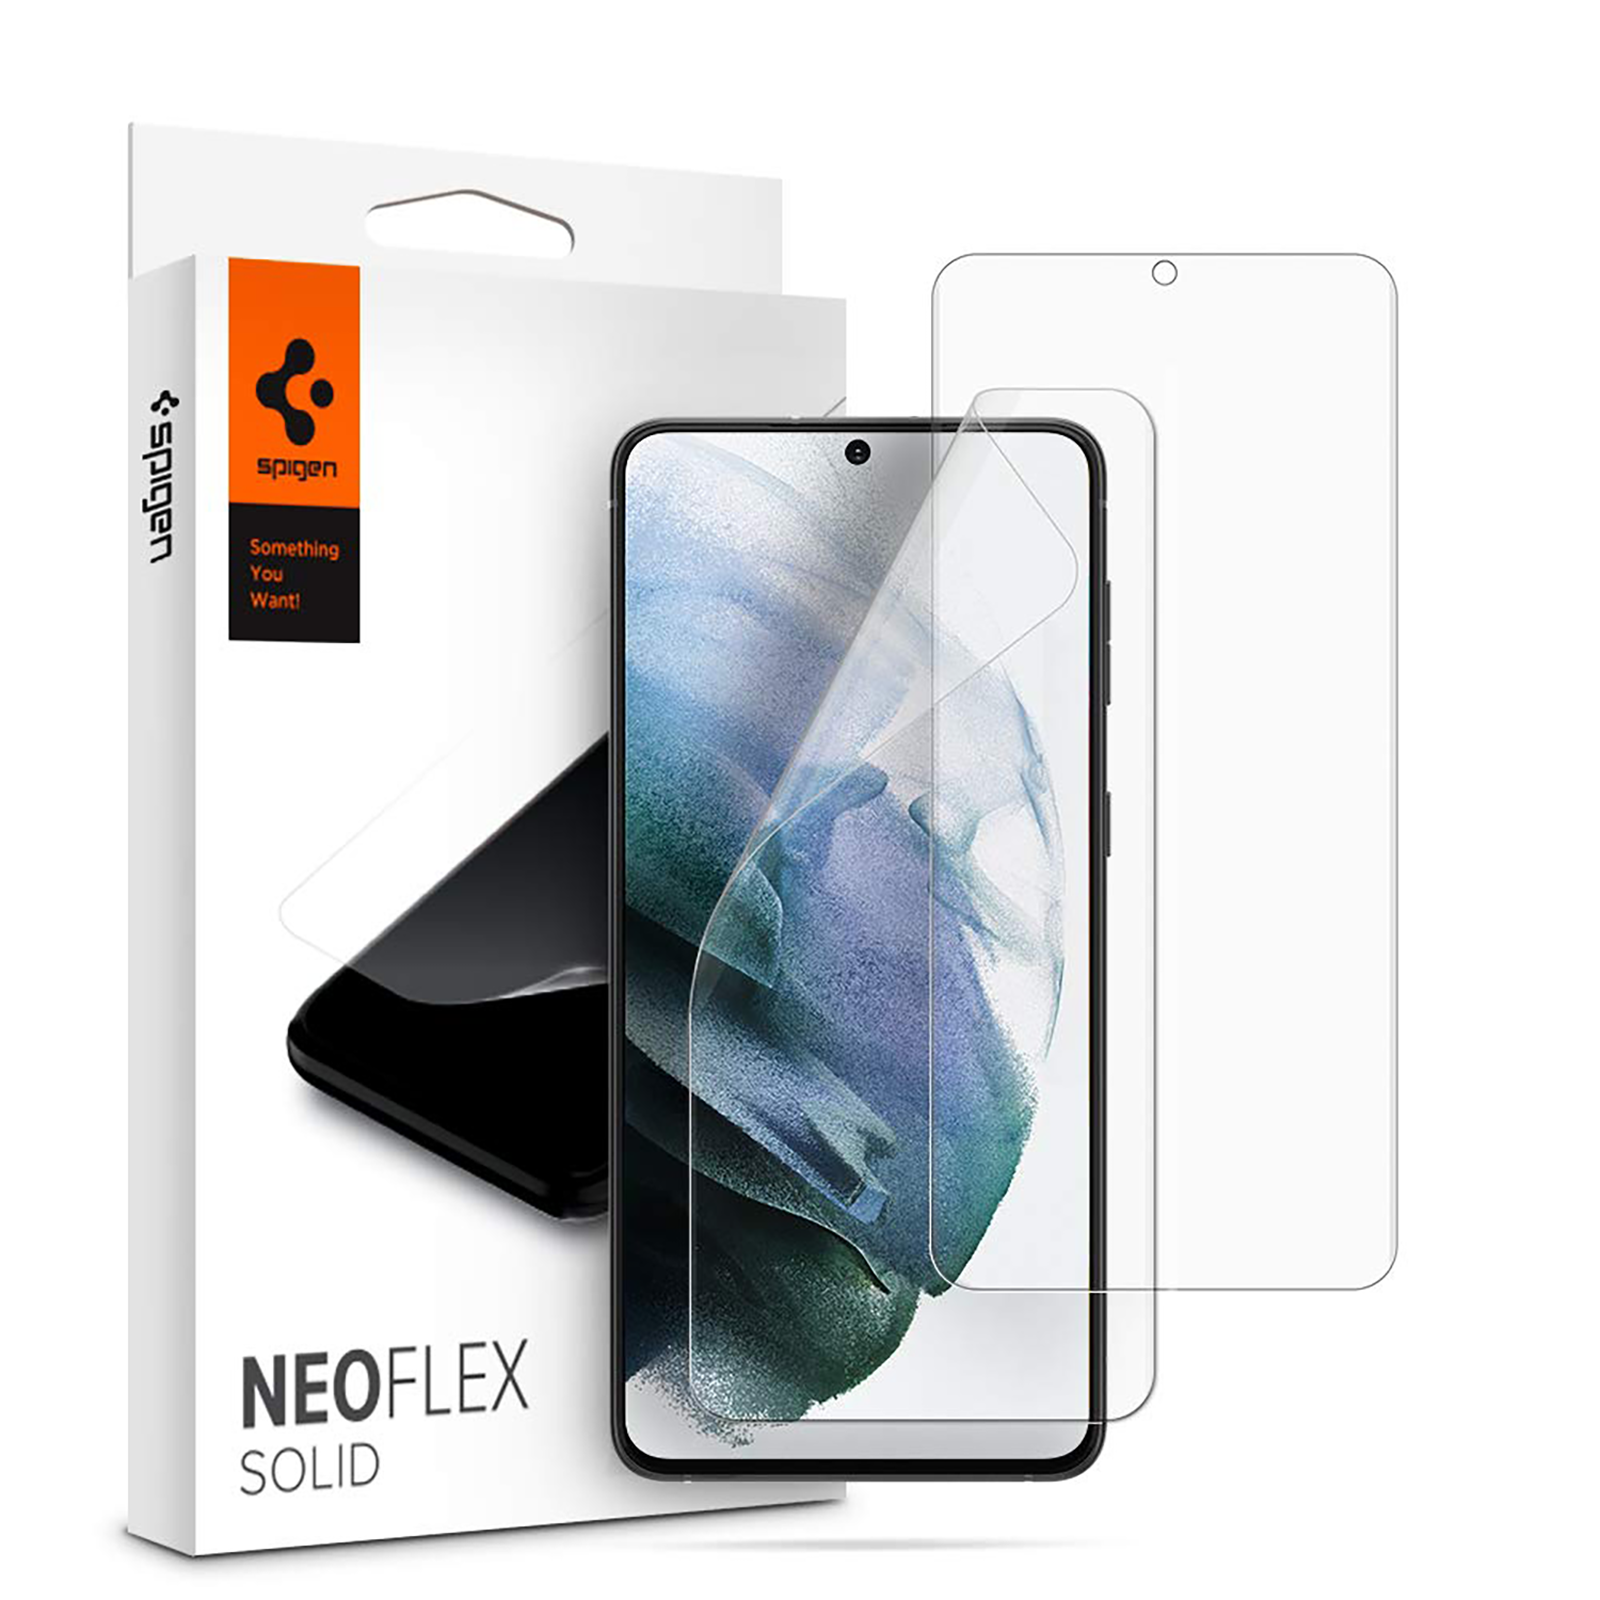 Spigen NeoFlex Solid Screen Protector for Samsung Galaxy S21 Plus (Undisturbed Touch Response, AFL02536, Clear)_1